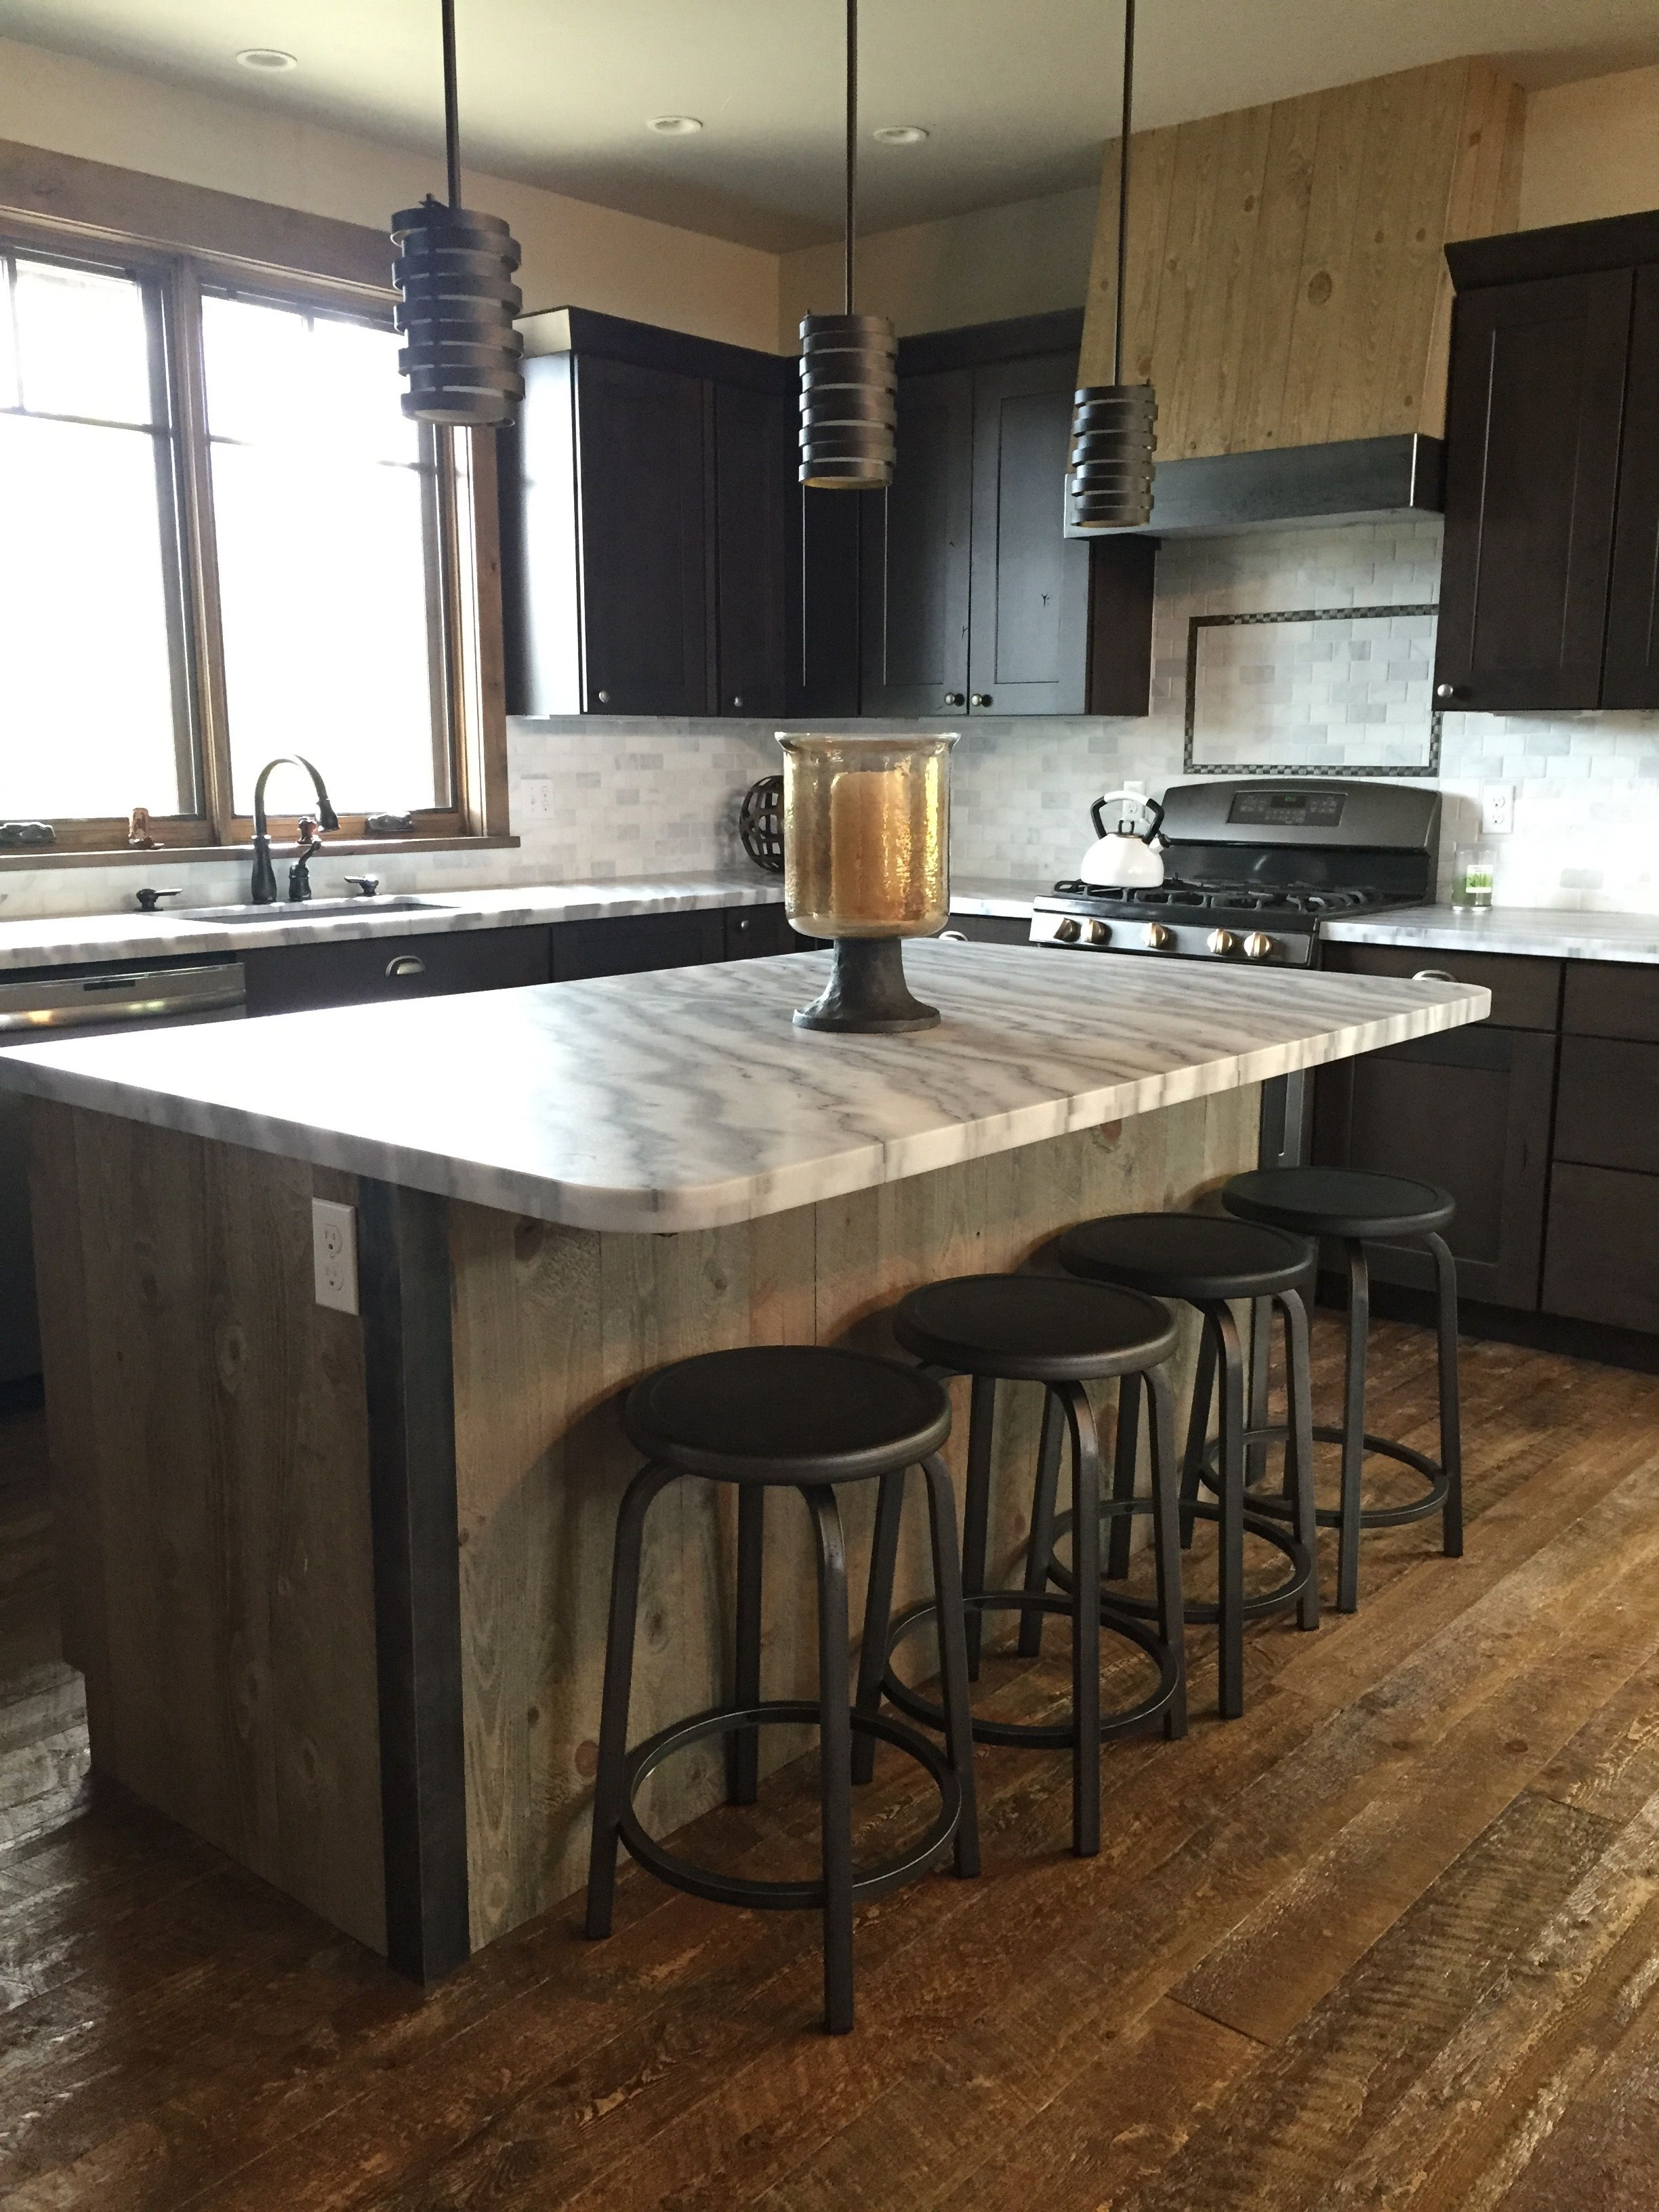 Kitchen Island wrapped in ghost wood